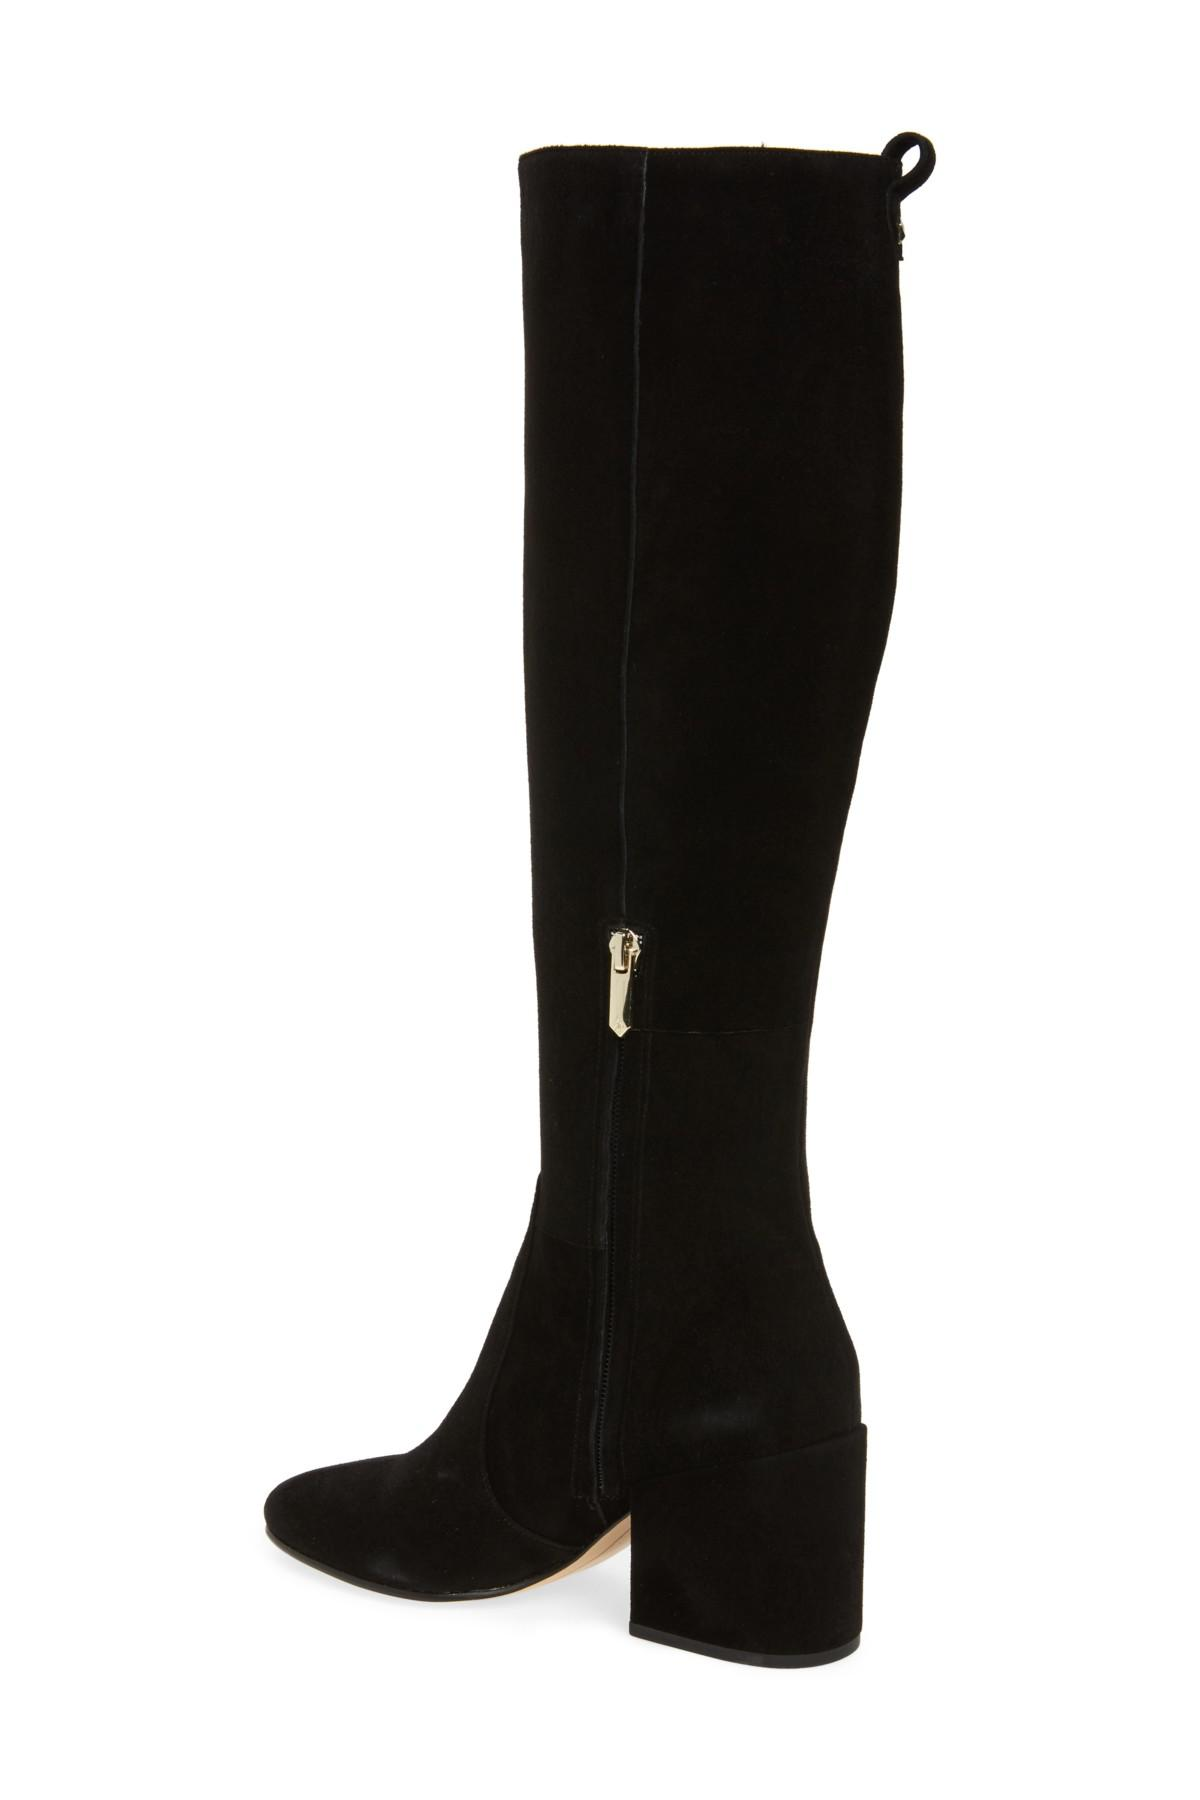 722364877 Lyst - Sam Edelman Thora Knee High Boot (women) in Black